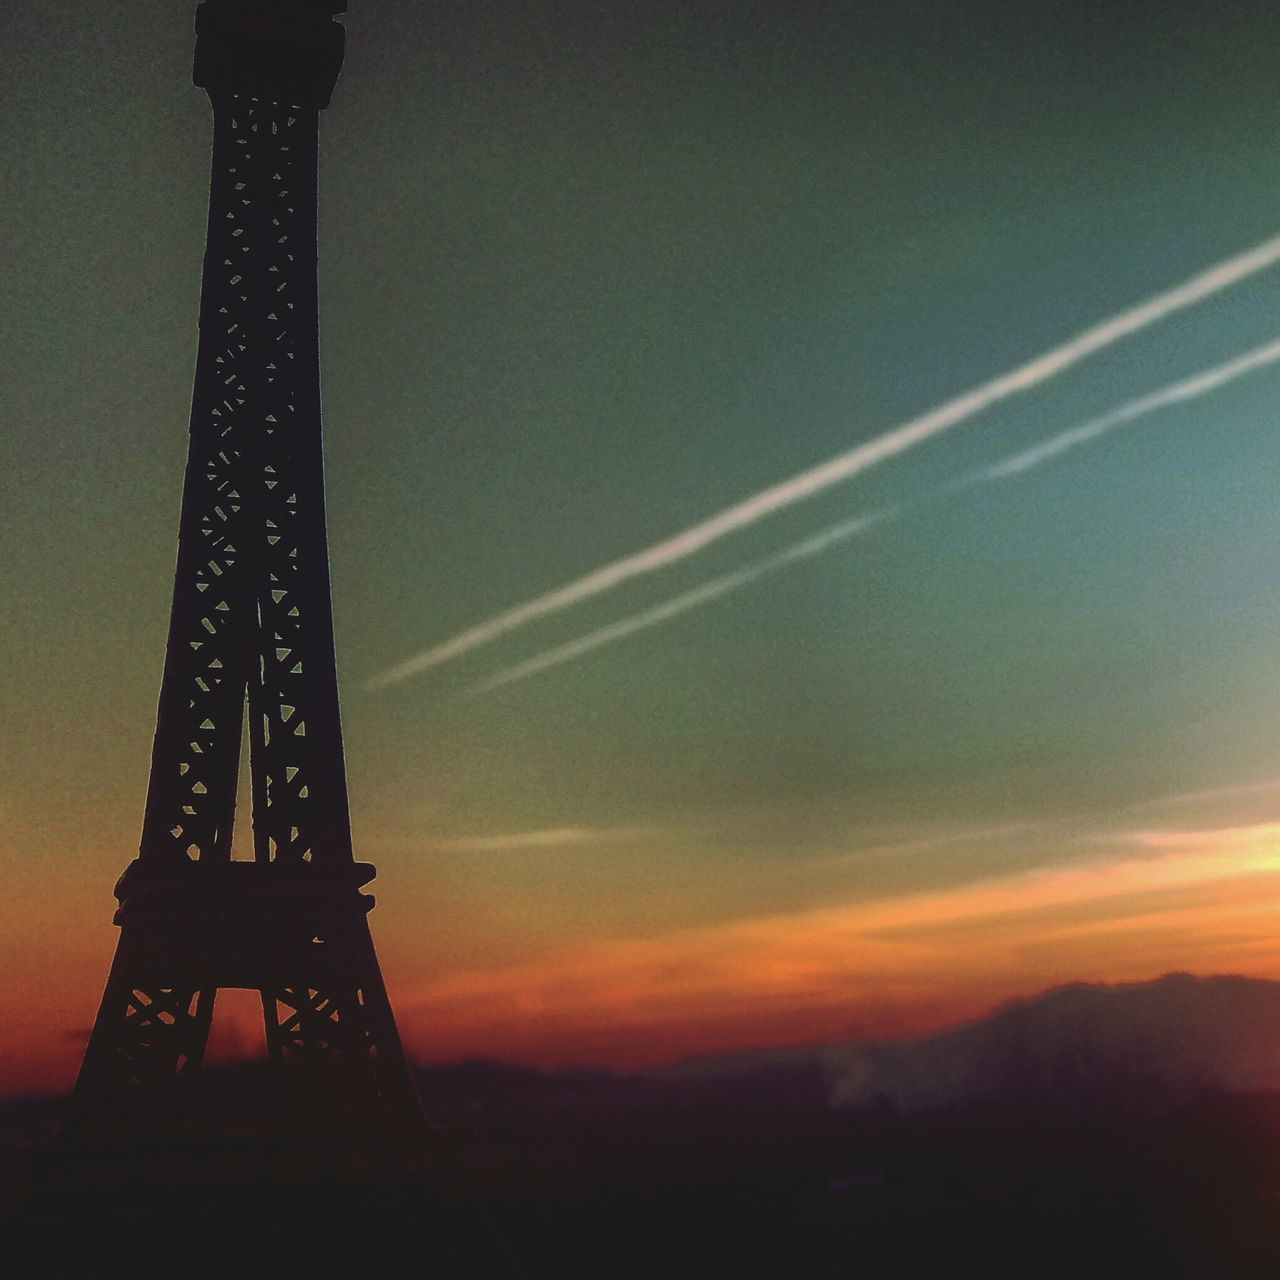 Tower Sky Silhouette Sunset Outdoors No People Day Loversunset Sunlight Phoyography EM Astronomy Aerospace Industry Perpective